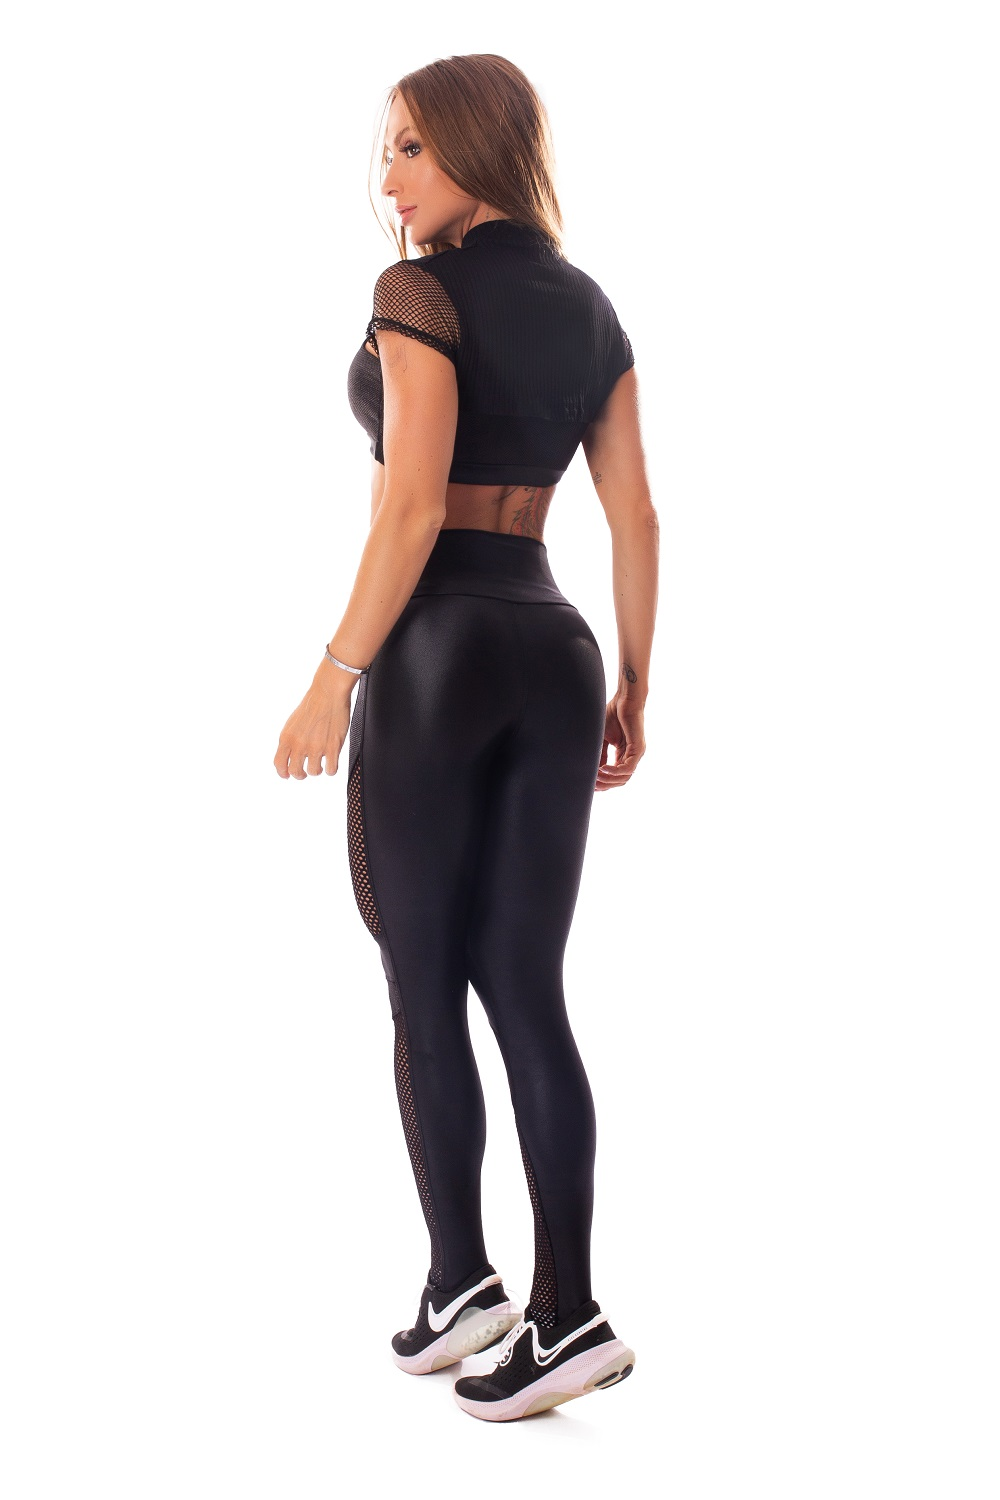 CROPPED E TOP AUDACIOUS WOMAN LETSGYM